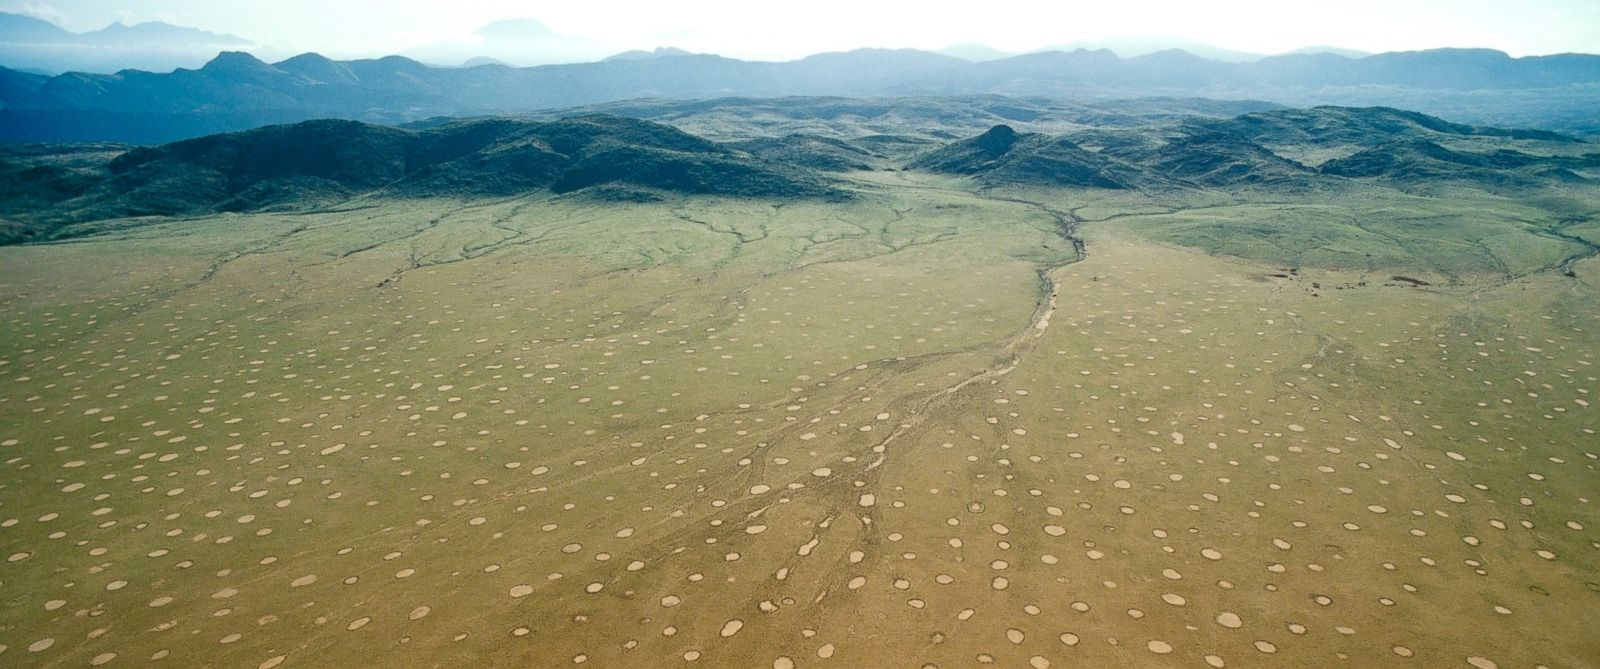 PHOTO: Fairy Circles are seen here in Namibia, Africa